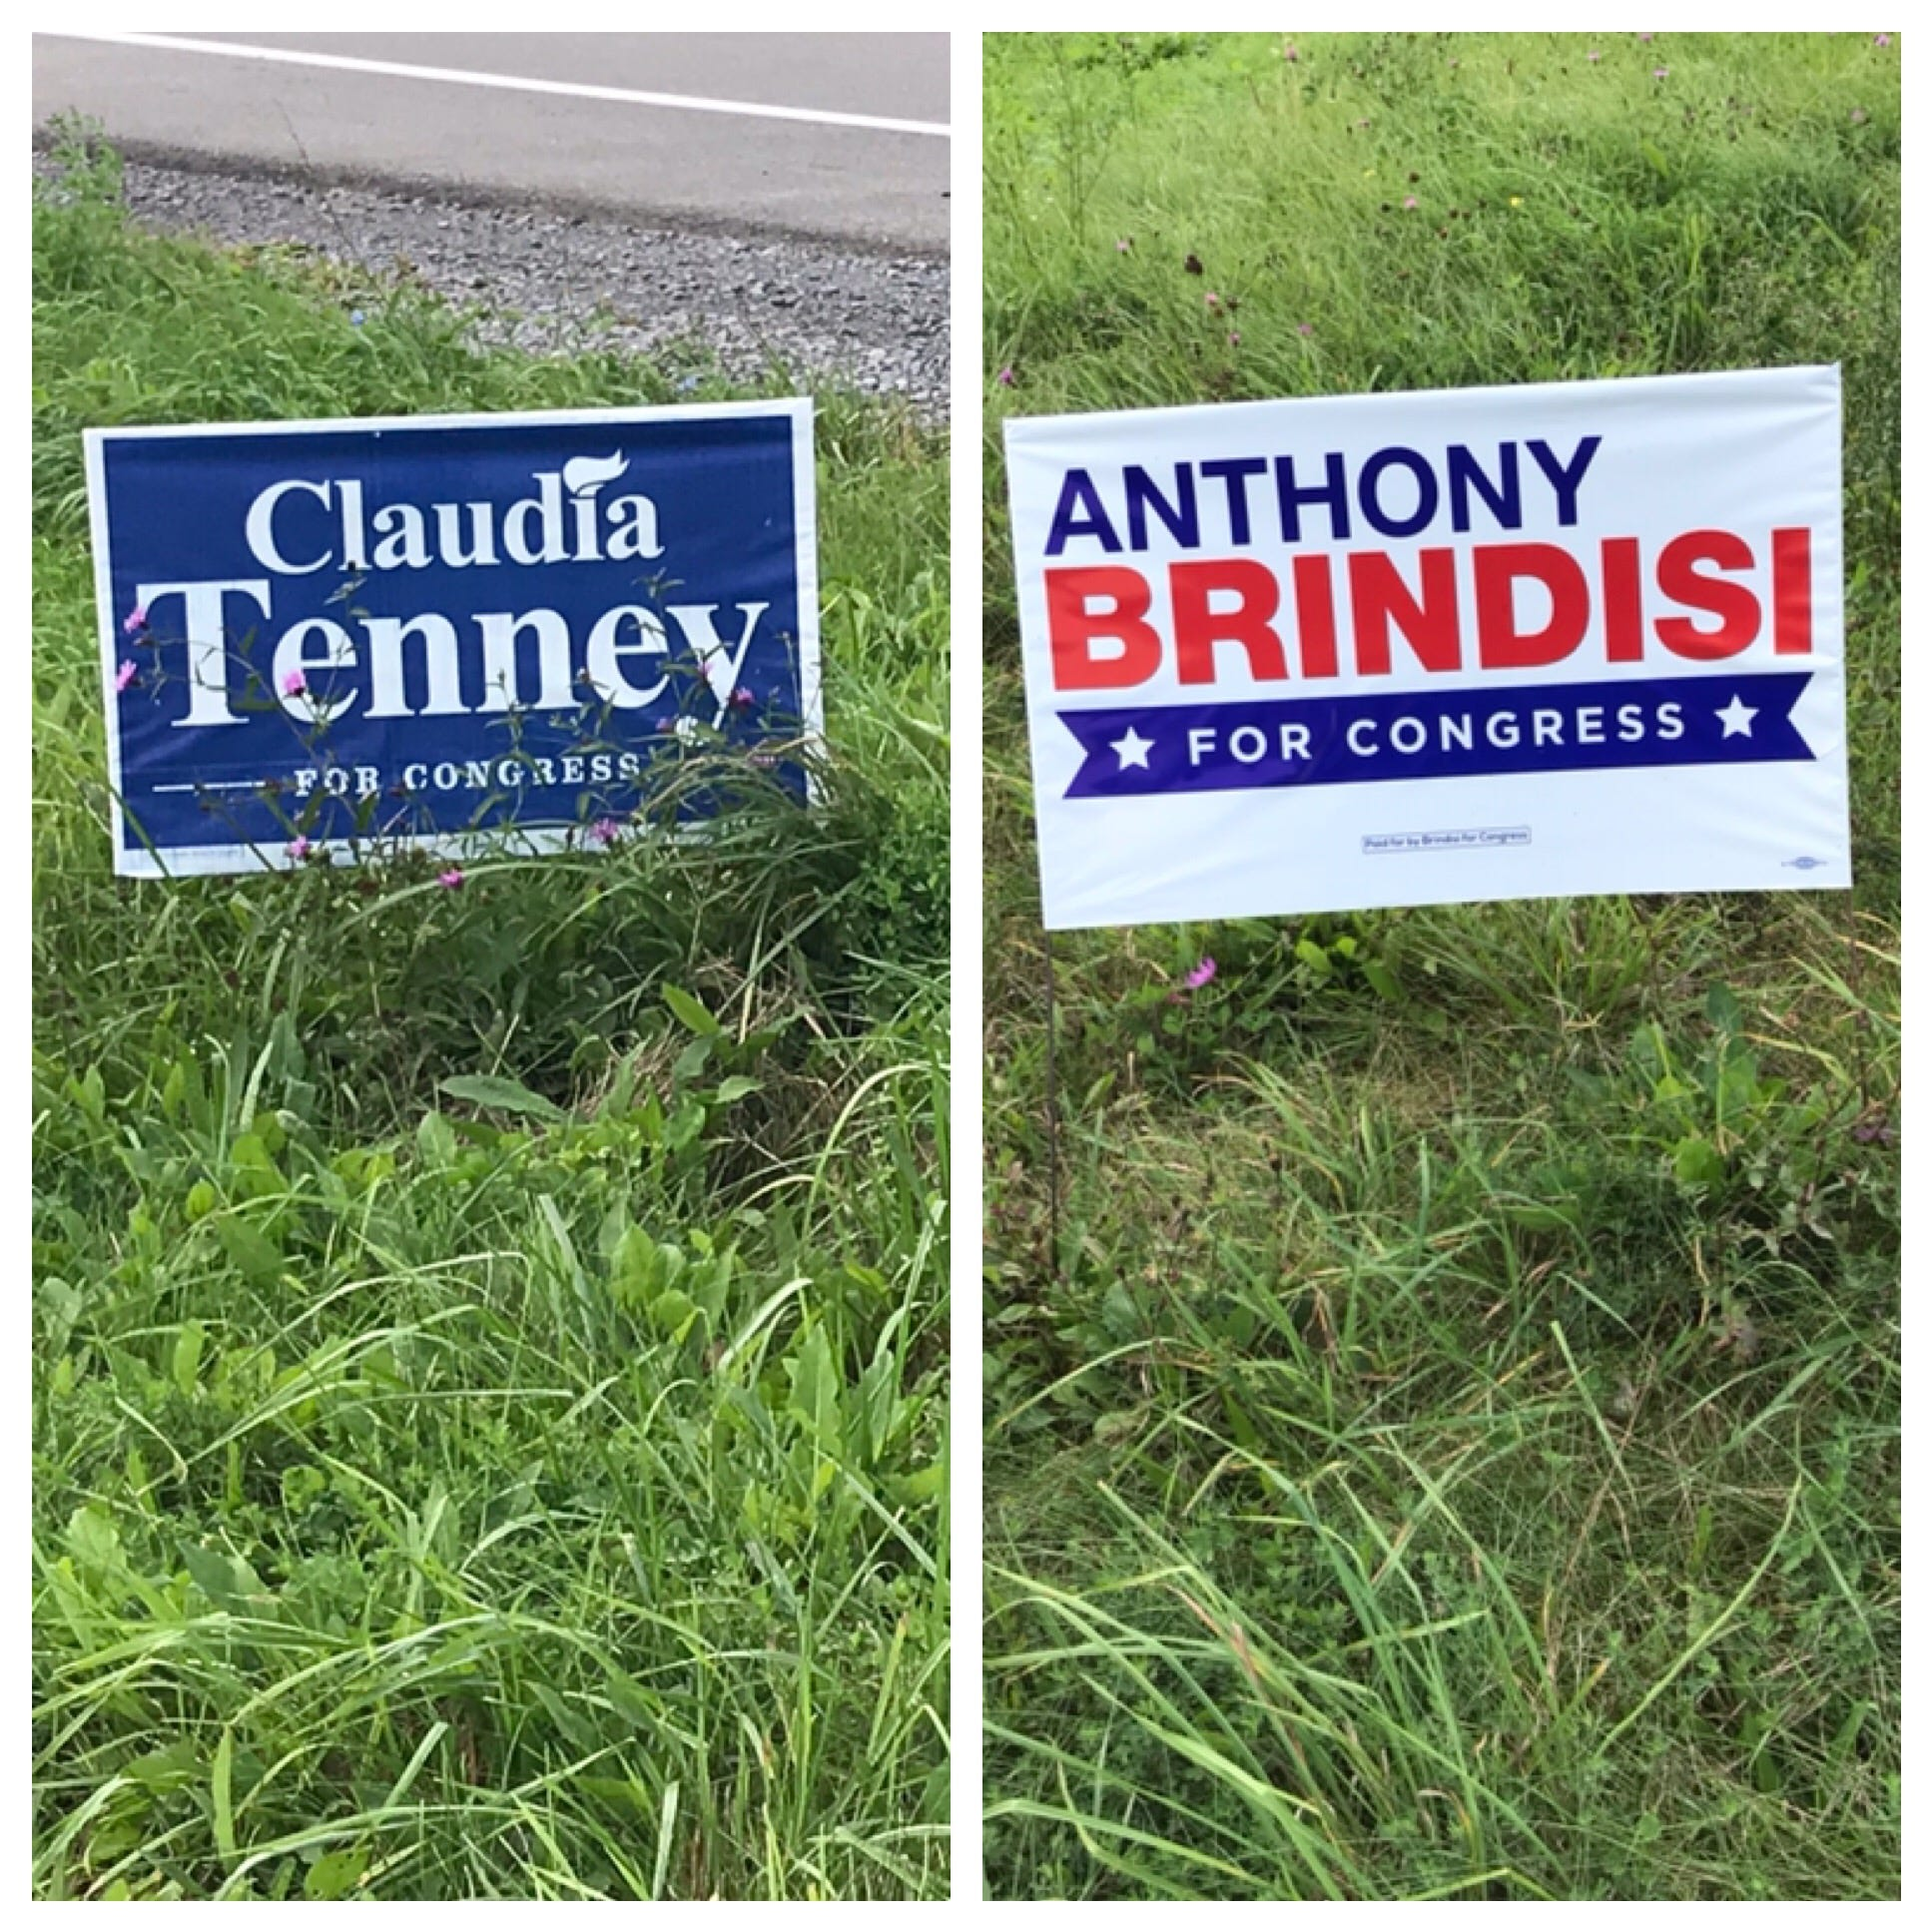 New York 22nd District: How close will the race be between Tenney and Brindisi?